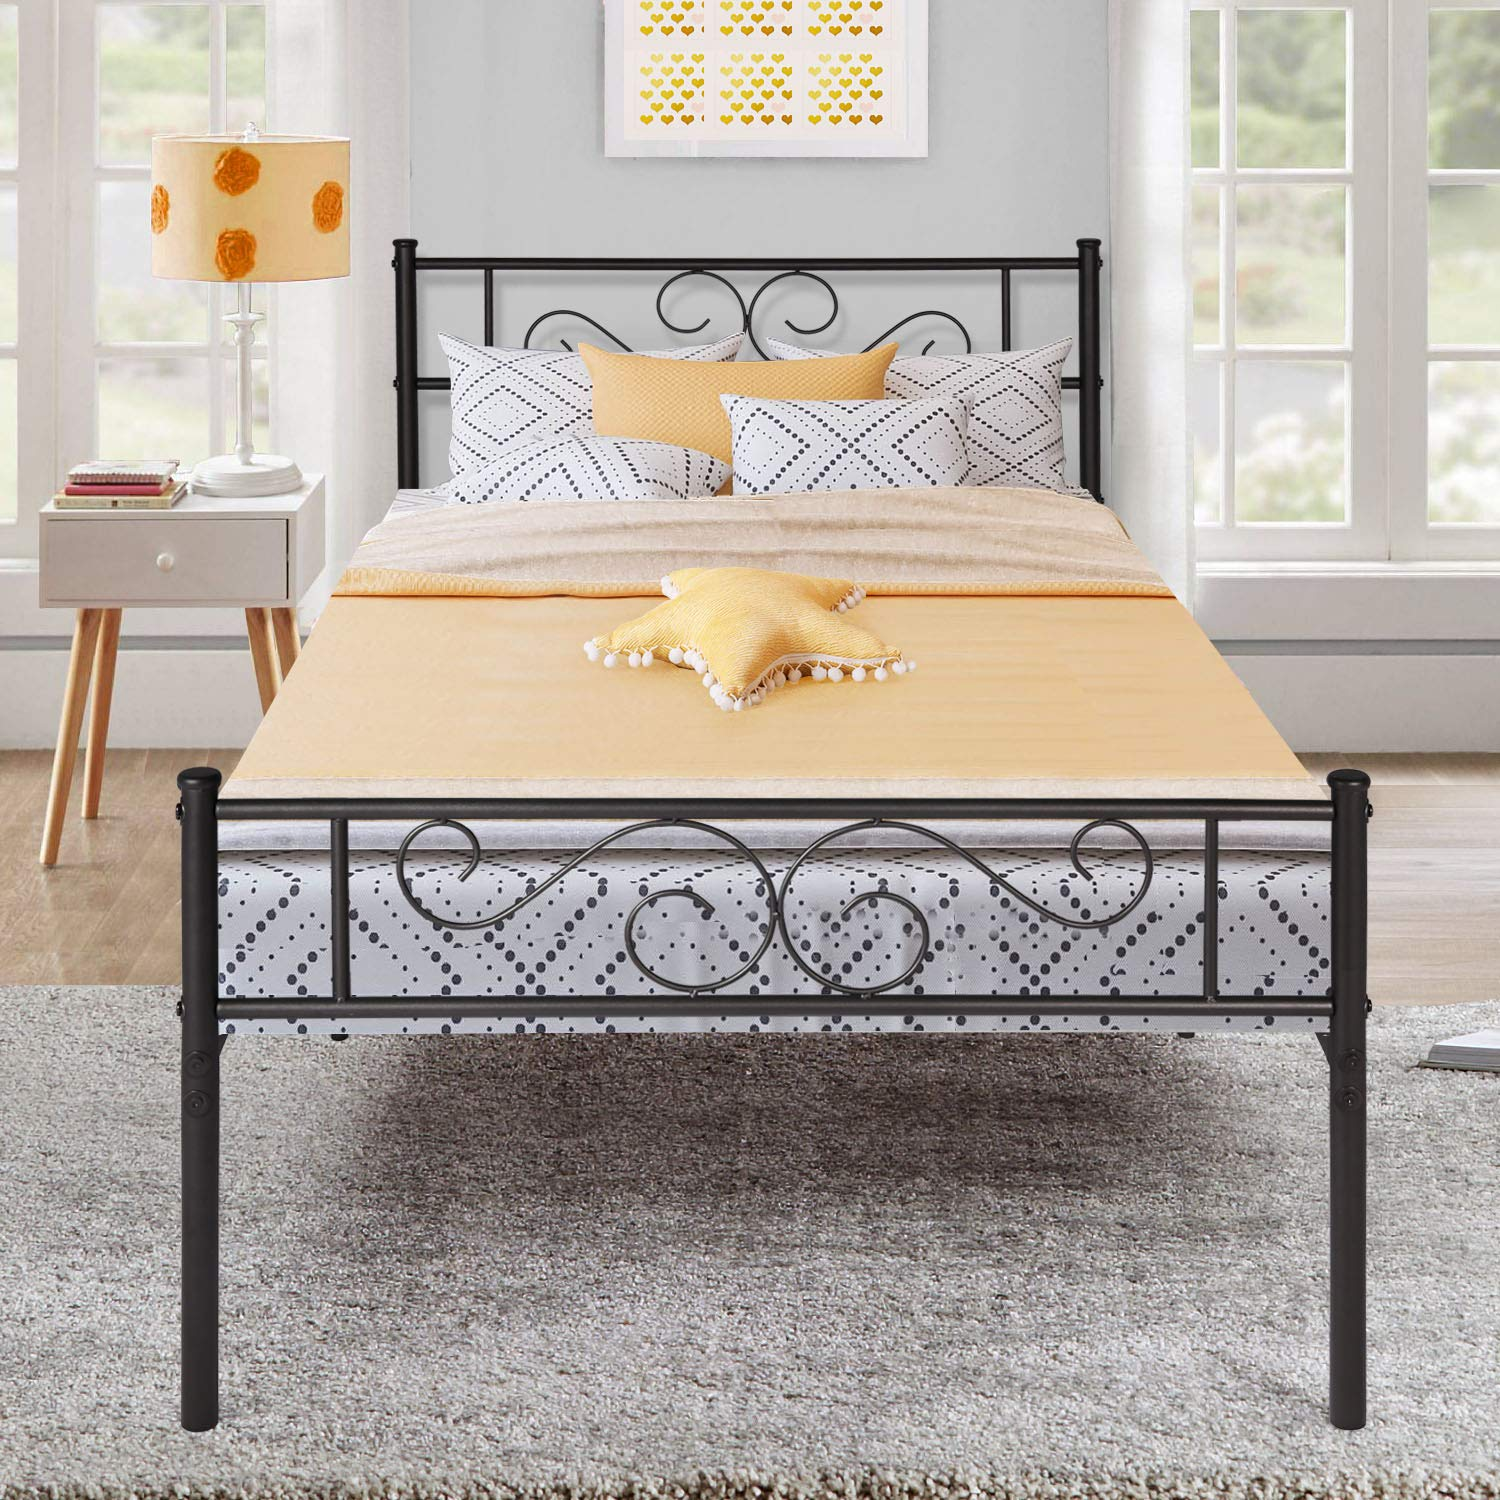 VECELO Metal Platform Bed Frame Mattress Foundation with Vintage HeadBoard Footboard, Easy Assembly Twin Black